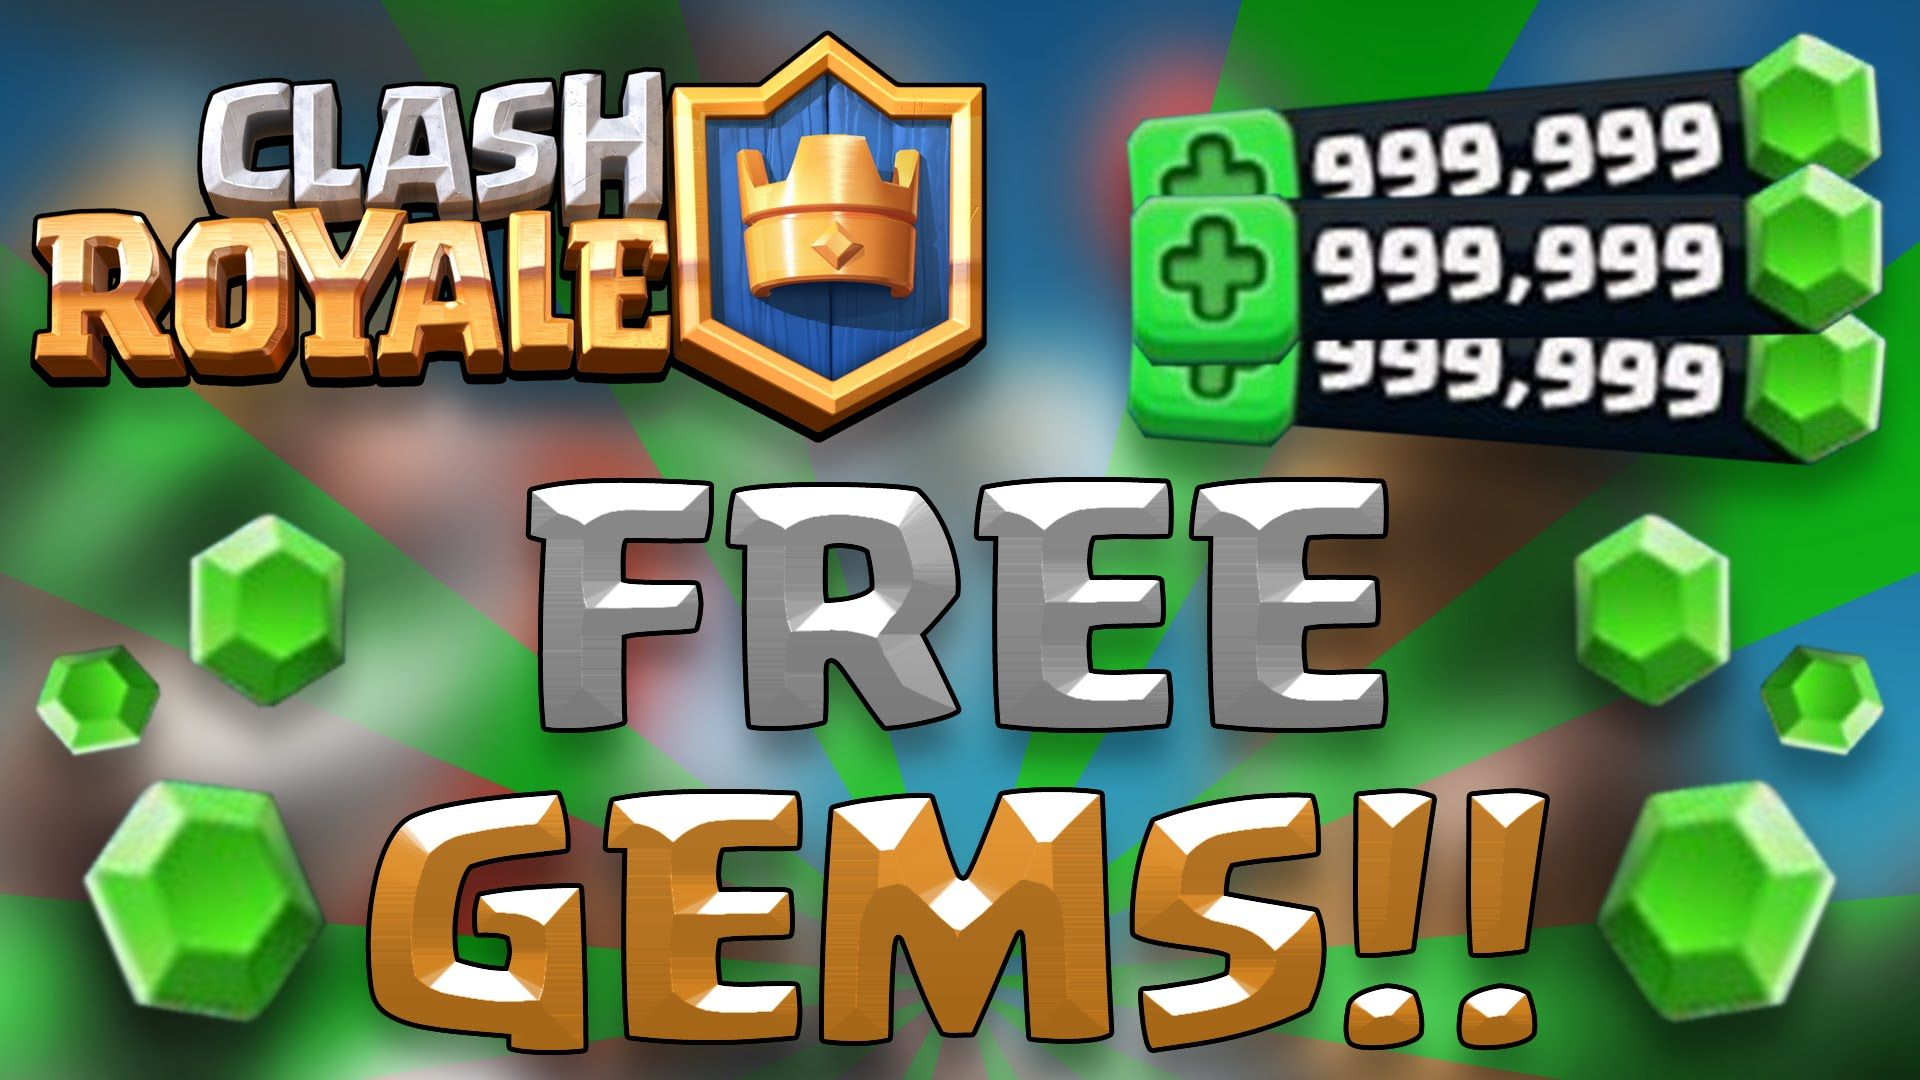 Get Clash Royale Unlimited Gems For Free! Tested [November 2020]